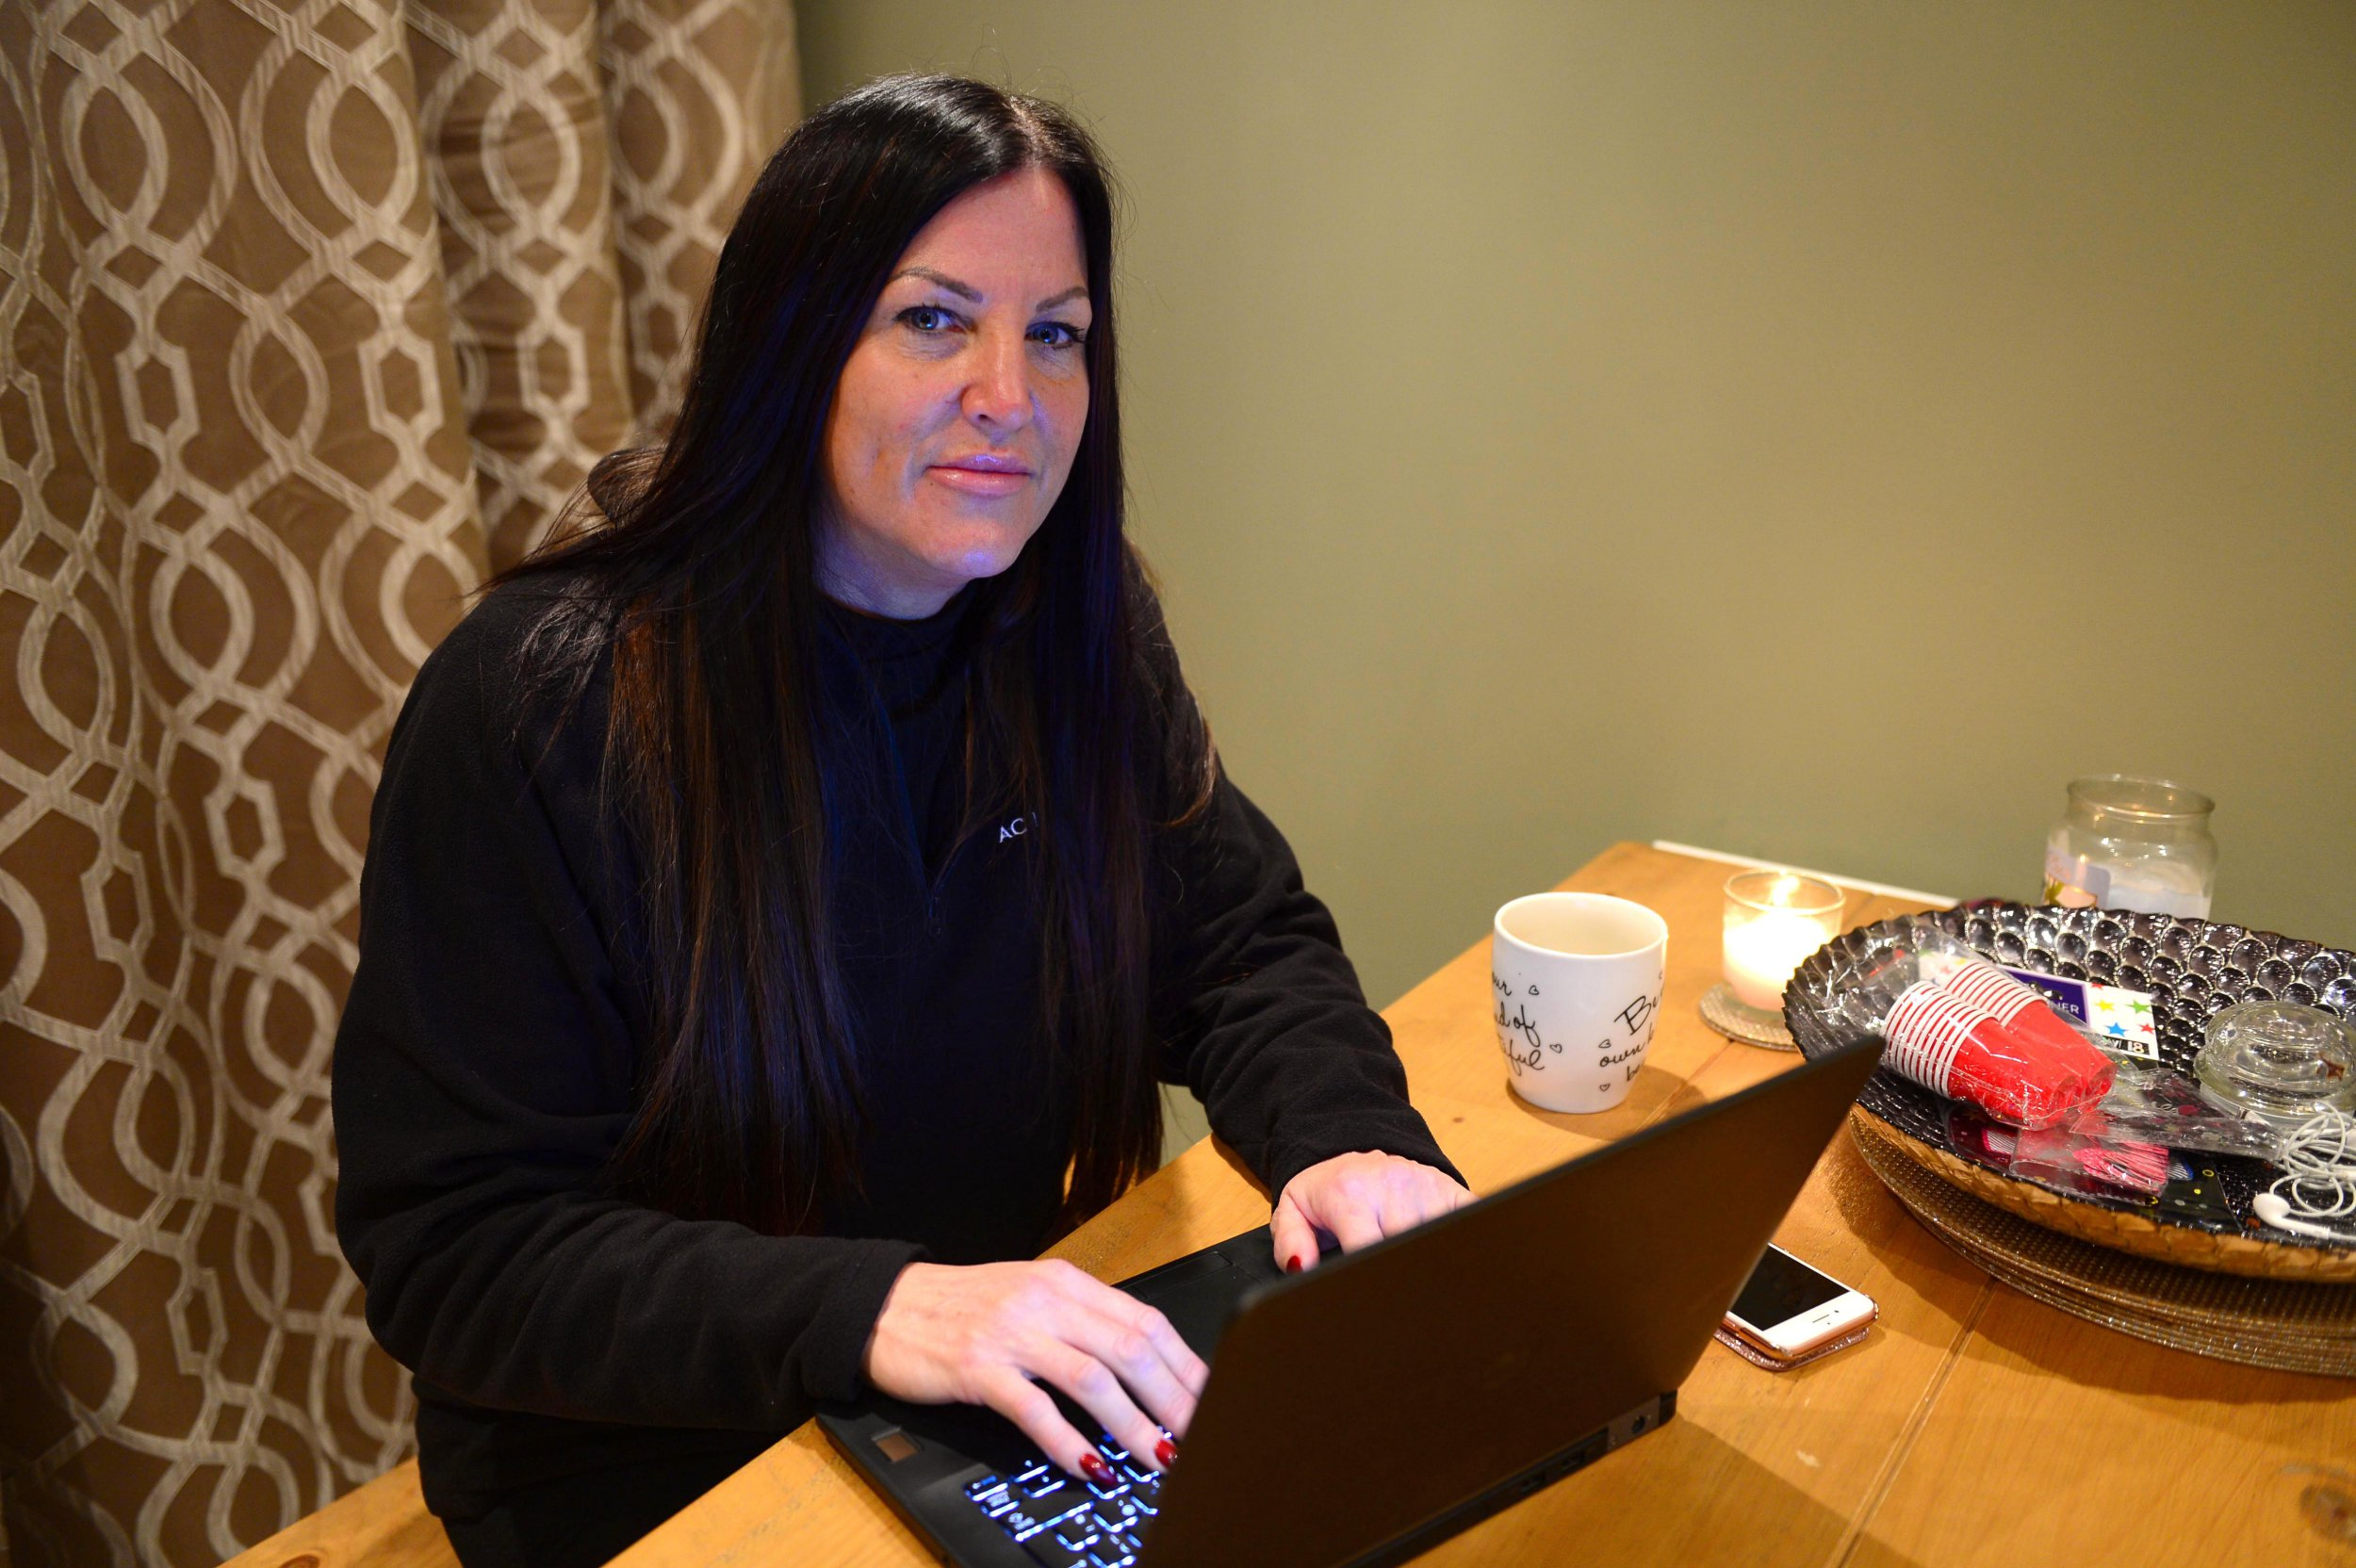 A woman has issued a warning after her friends were conned out of hundreds of pounds by hackers who took over her Facebook account for two days. Vanessa Storey said fraudsters message more than 200 people on her friends list after gaining access to her account last weekend. Caption: Vanessa Storey from Grimsby, Linconlshire, who was targeted by Facebook hackers